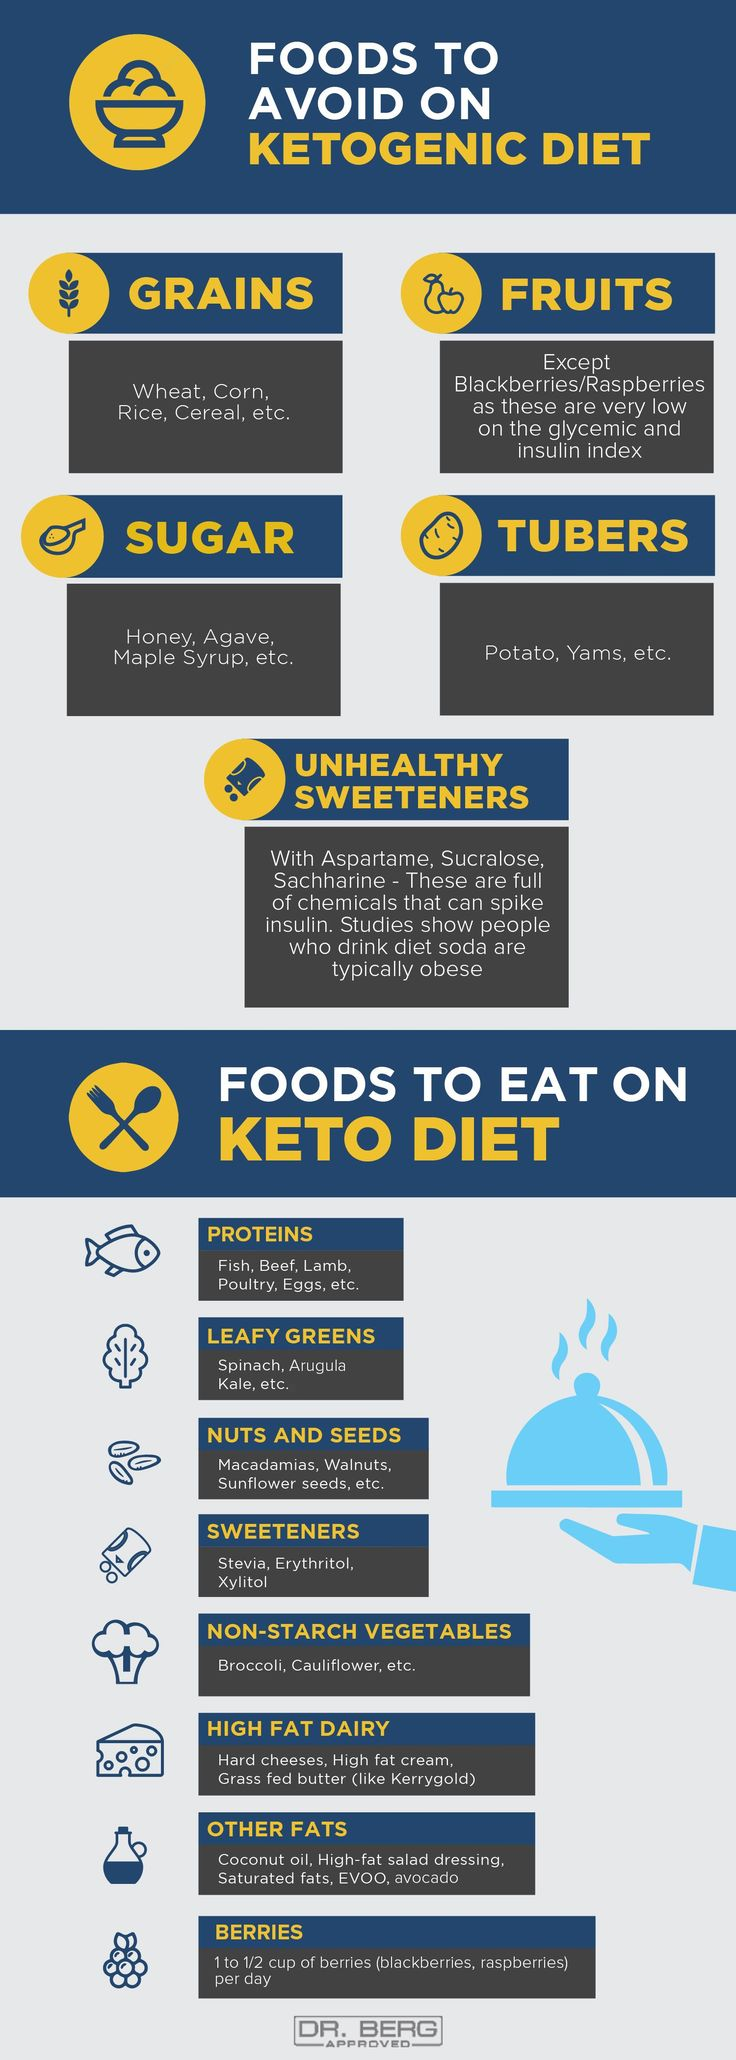 225 best HEALTH - Diets (r*) images on Pinterest | Exercises, Healthy meals and Keto diet foods